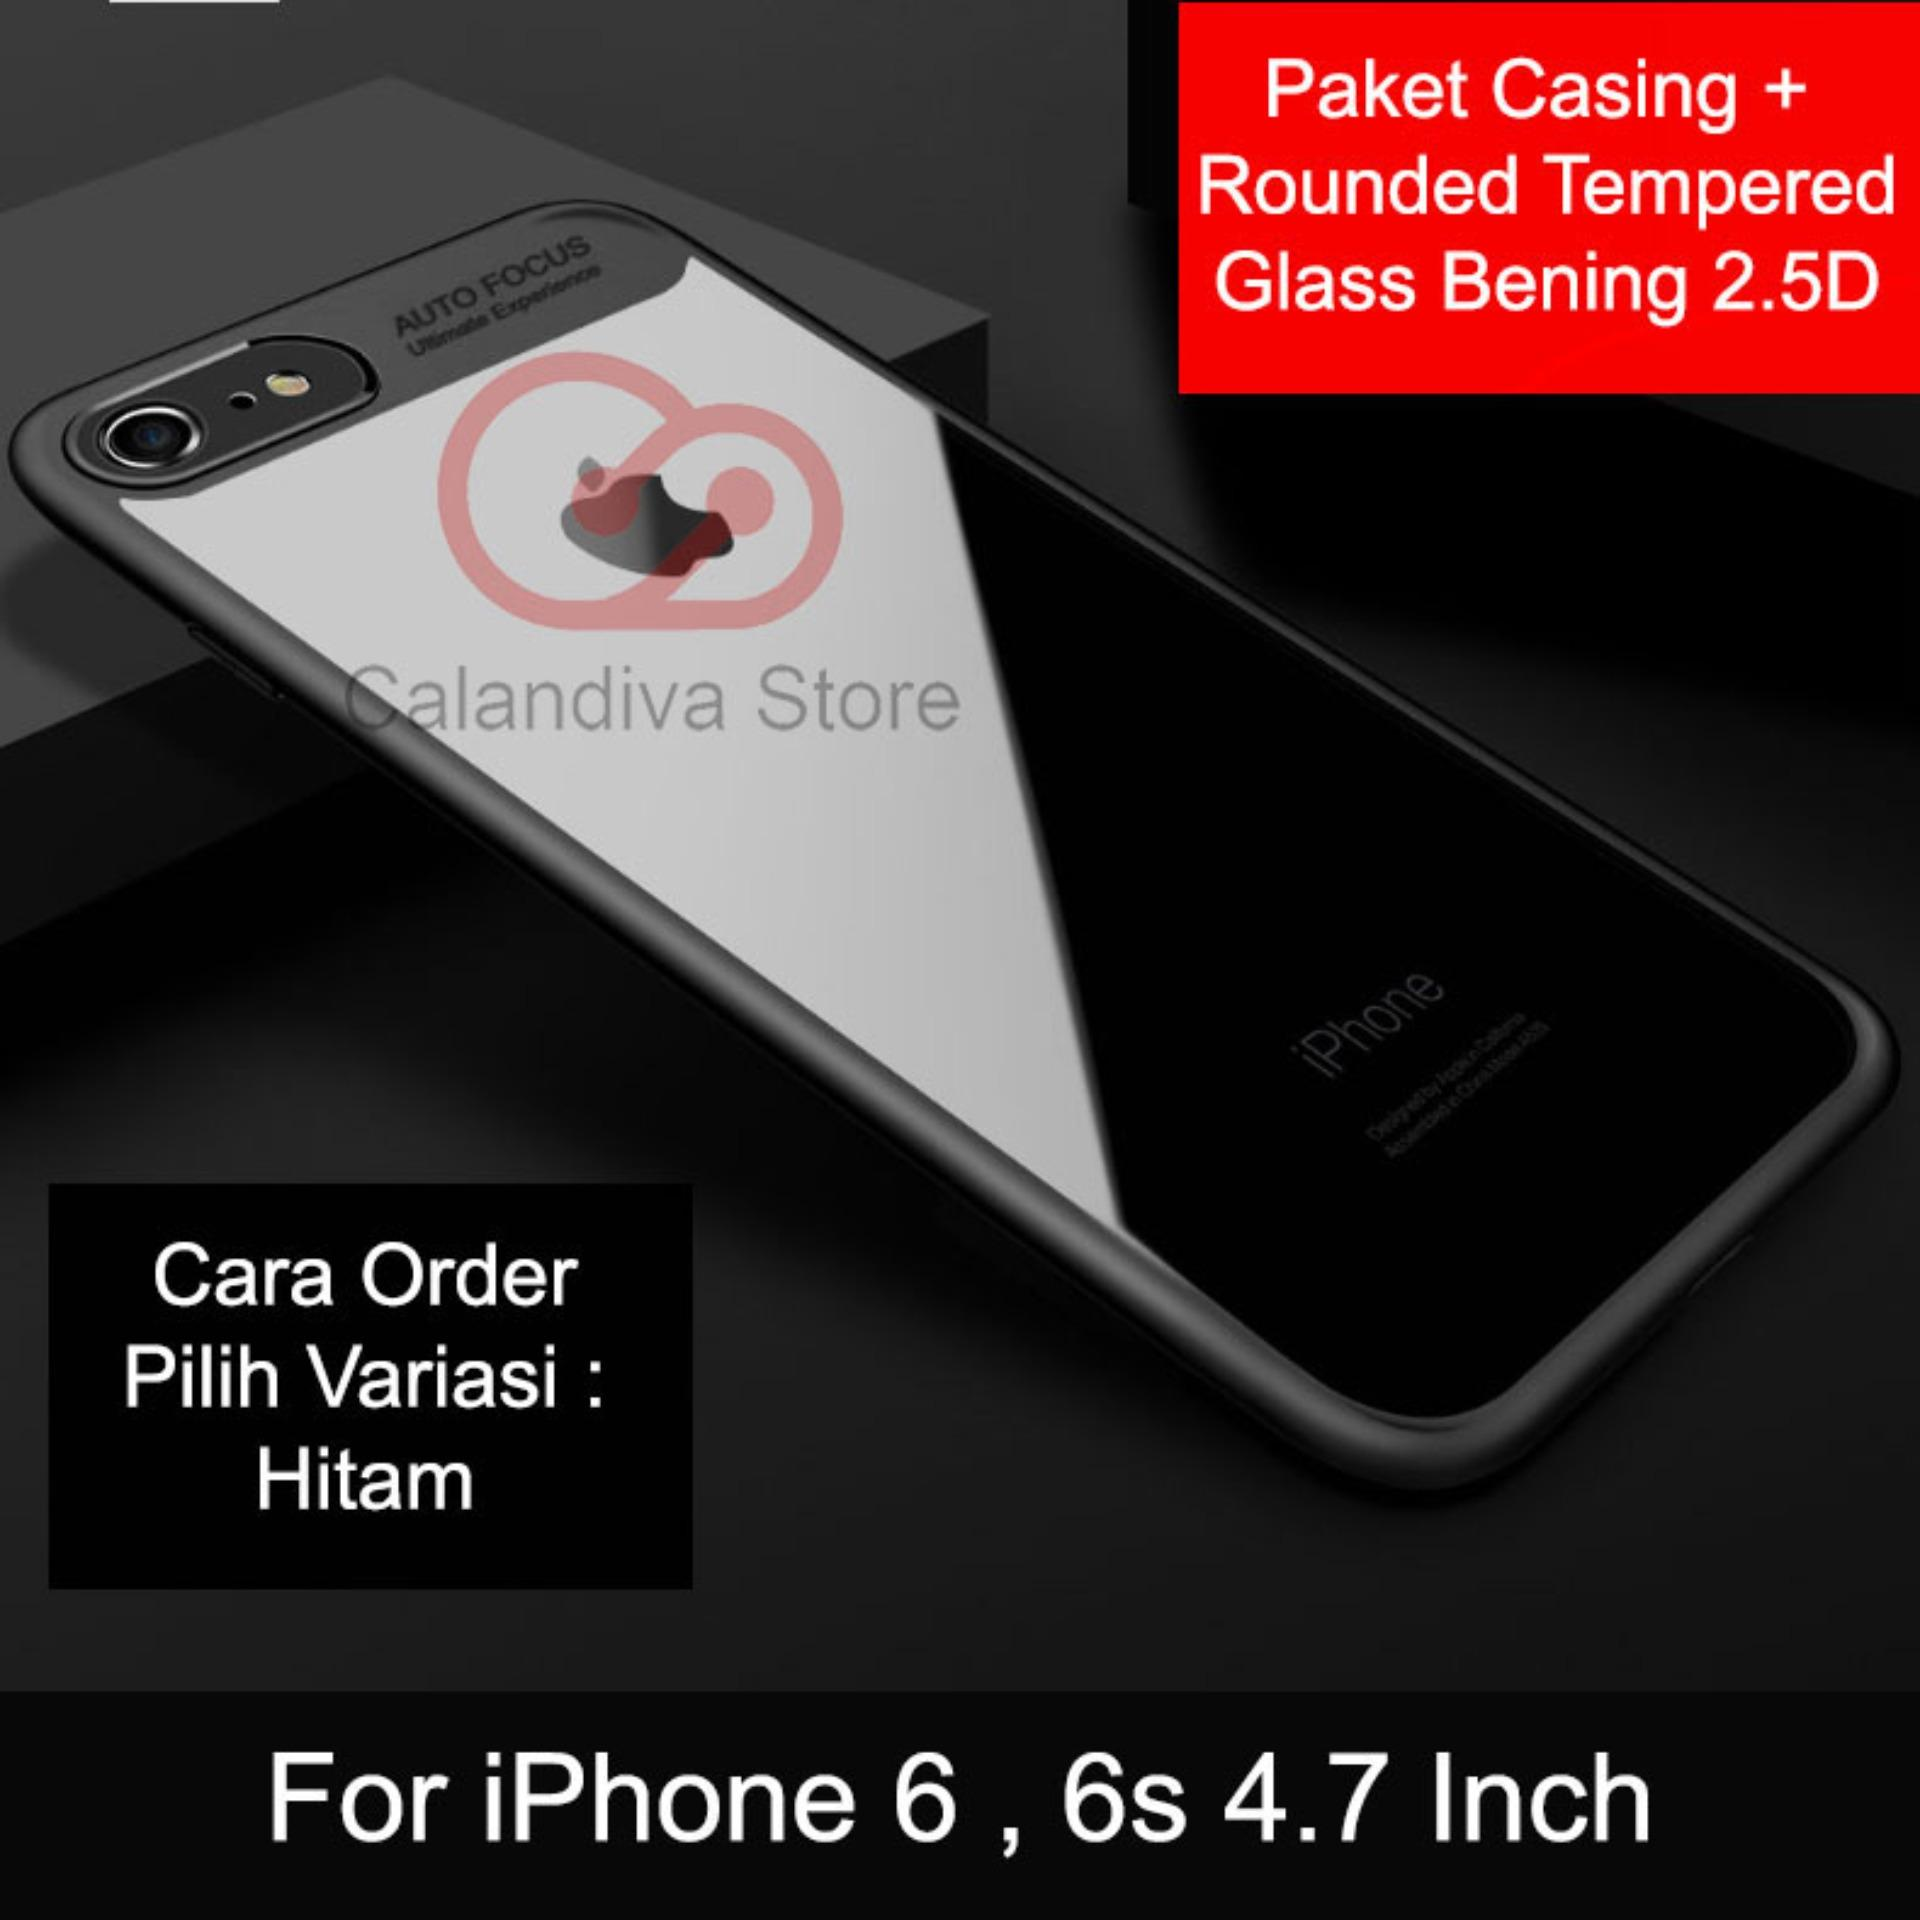 Promo Calandiva Transparent Shockproof Hybrid Premium Quality Grade A Case For Iphone 6 Iphone 6S 4 7 Inch Sama Ukuran Rounded Tempered Glass 2 5D Jawa Barat